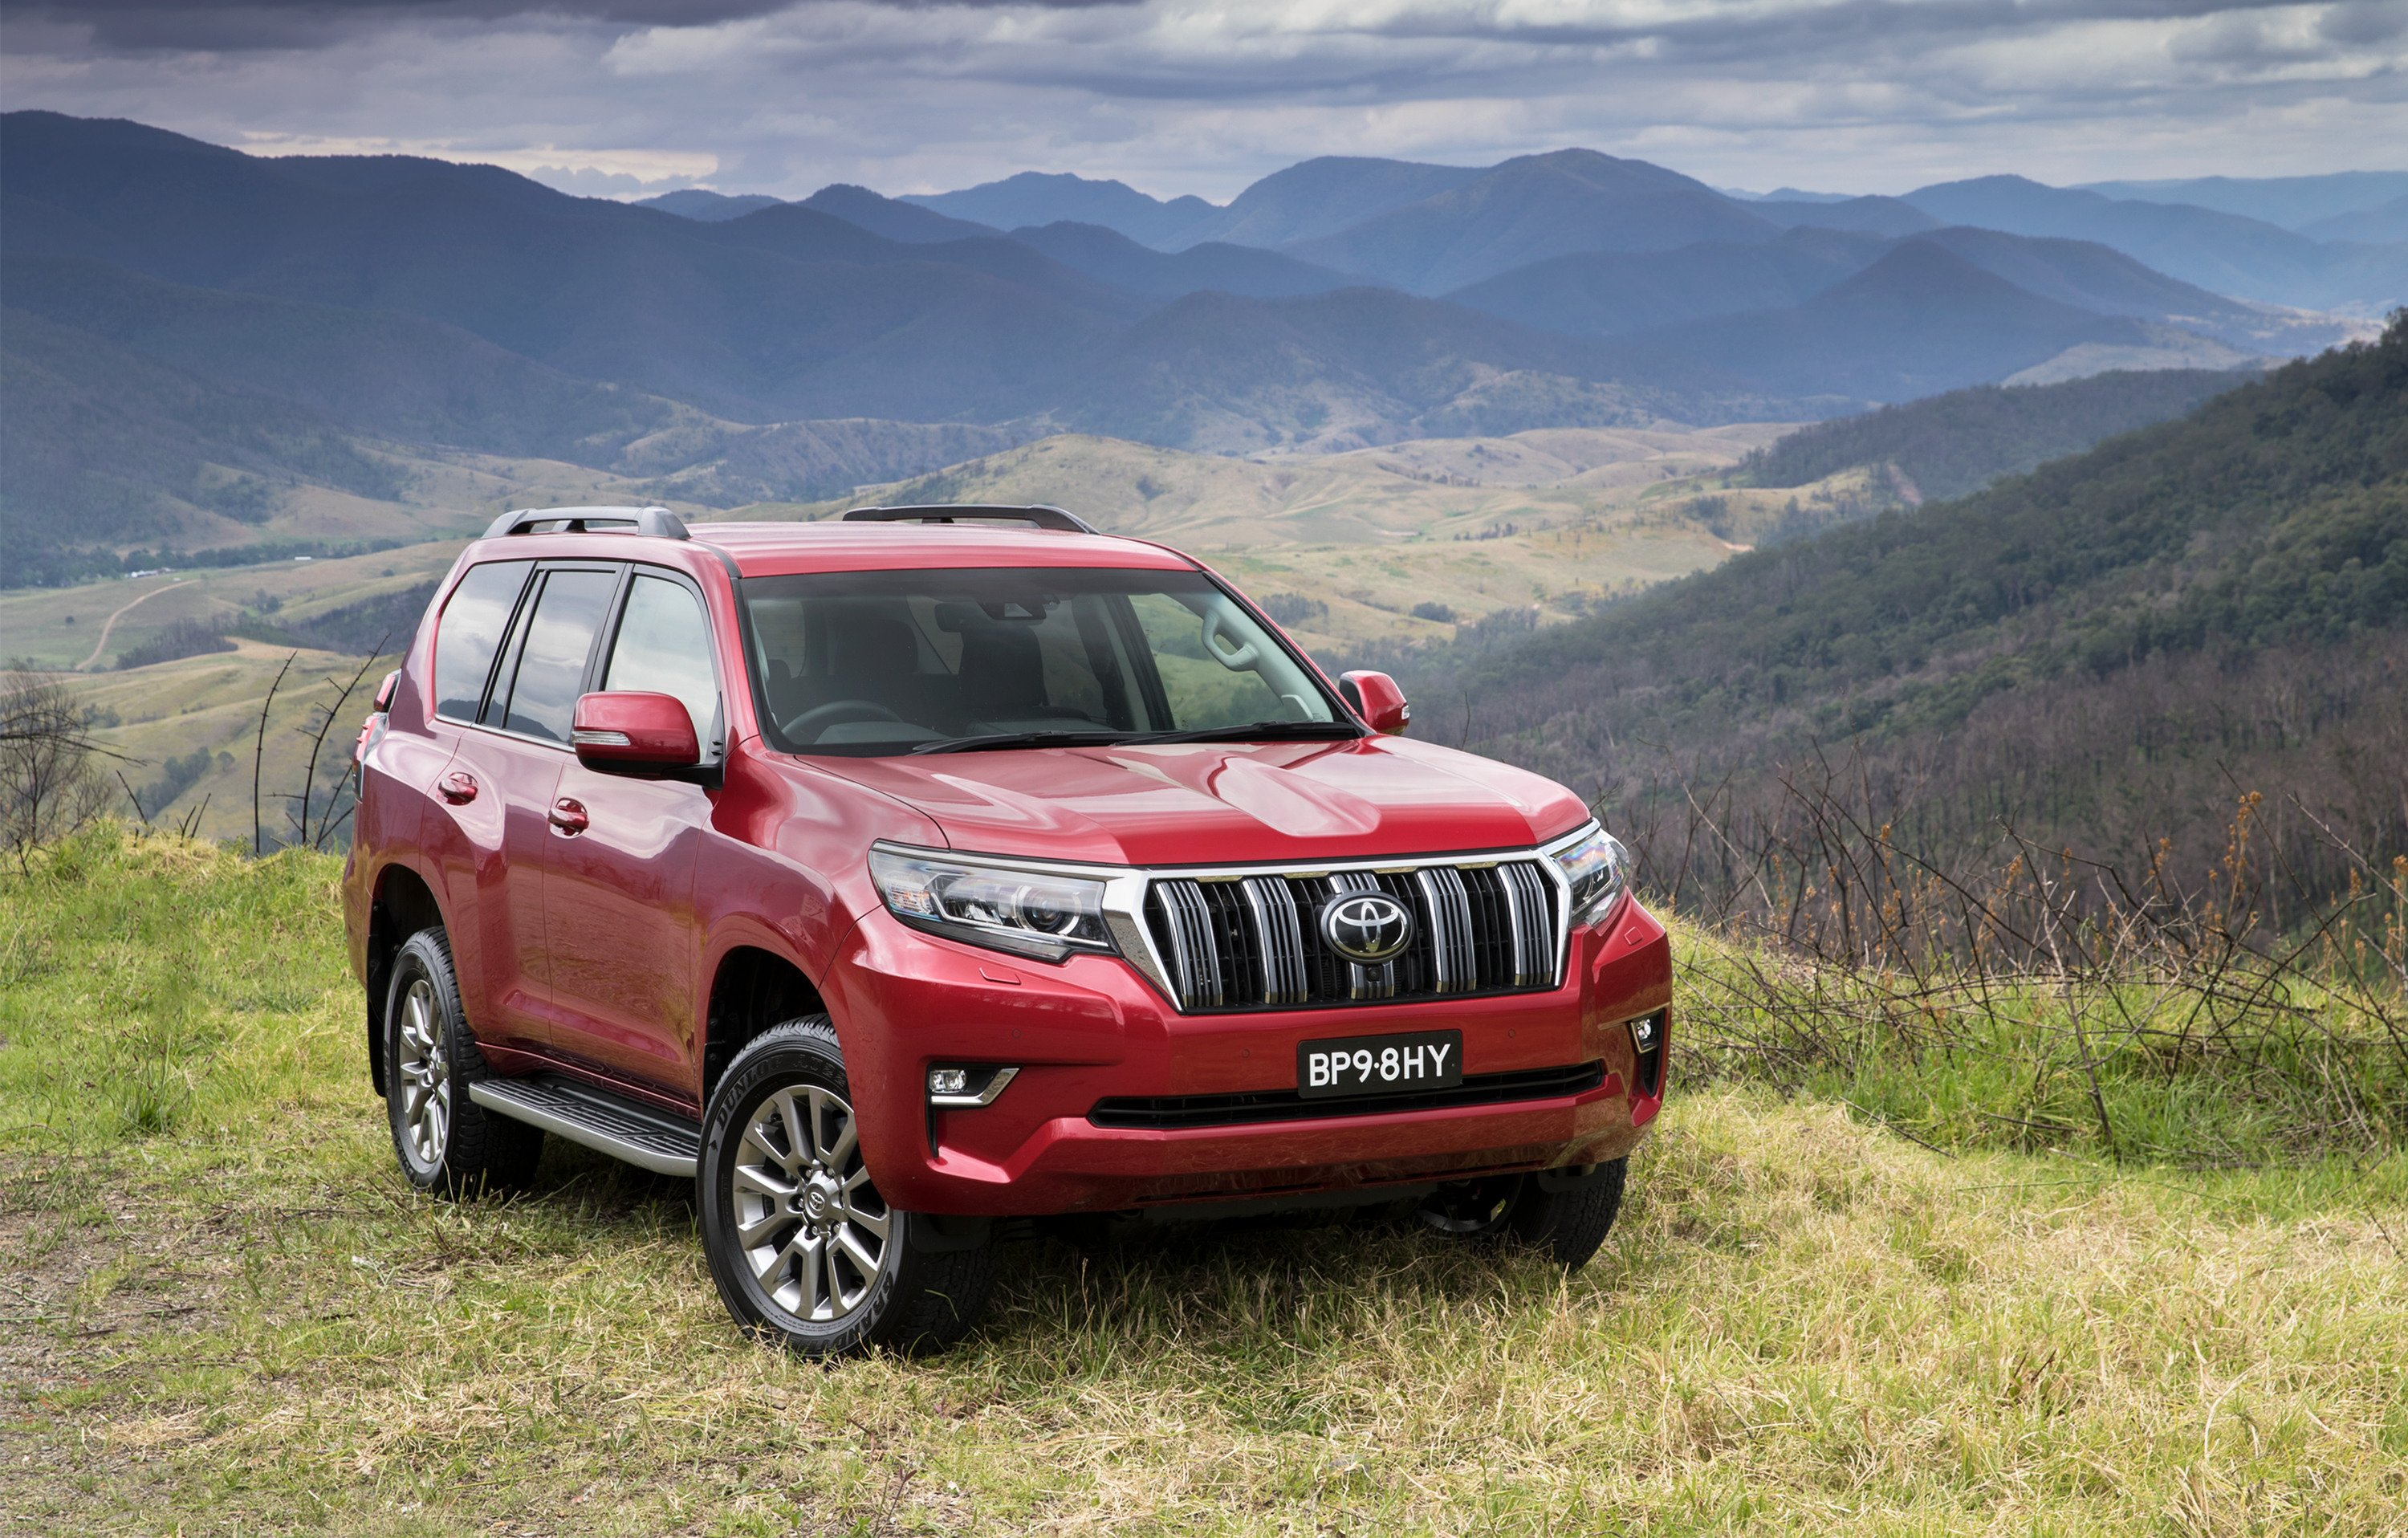 2018 toyota landcruiser prado pricing and specs photos 1 of 26. Black Bedroom Furniture Sets. Home Design Ideas